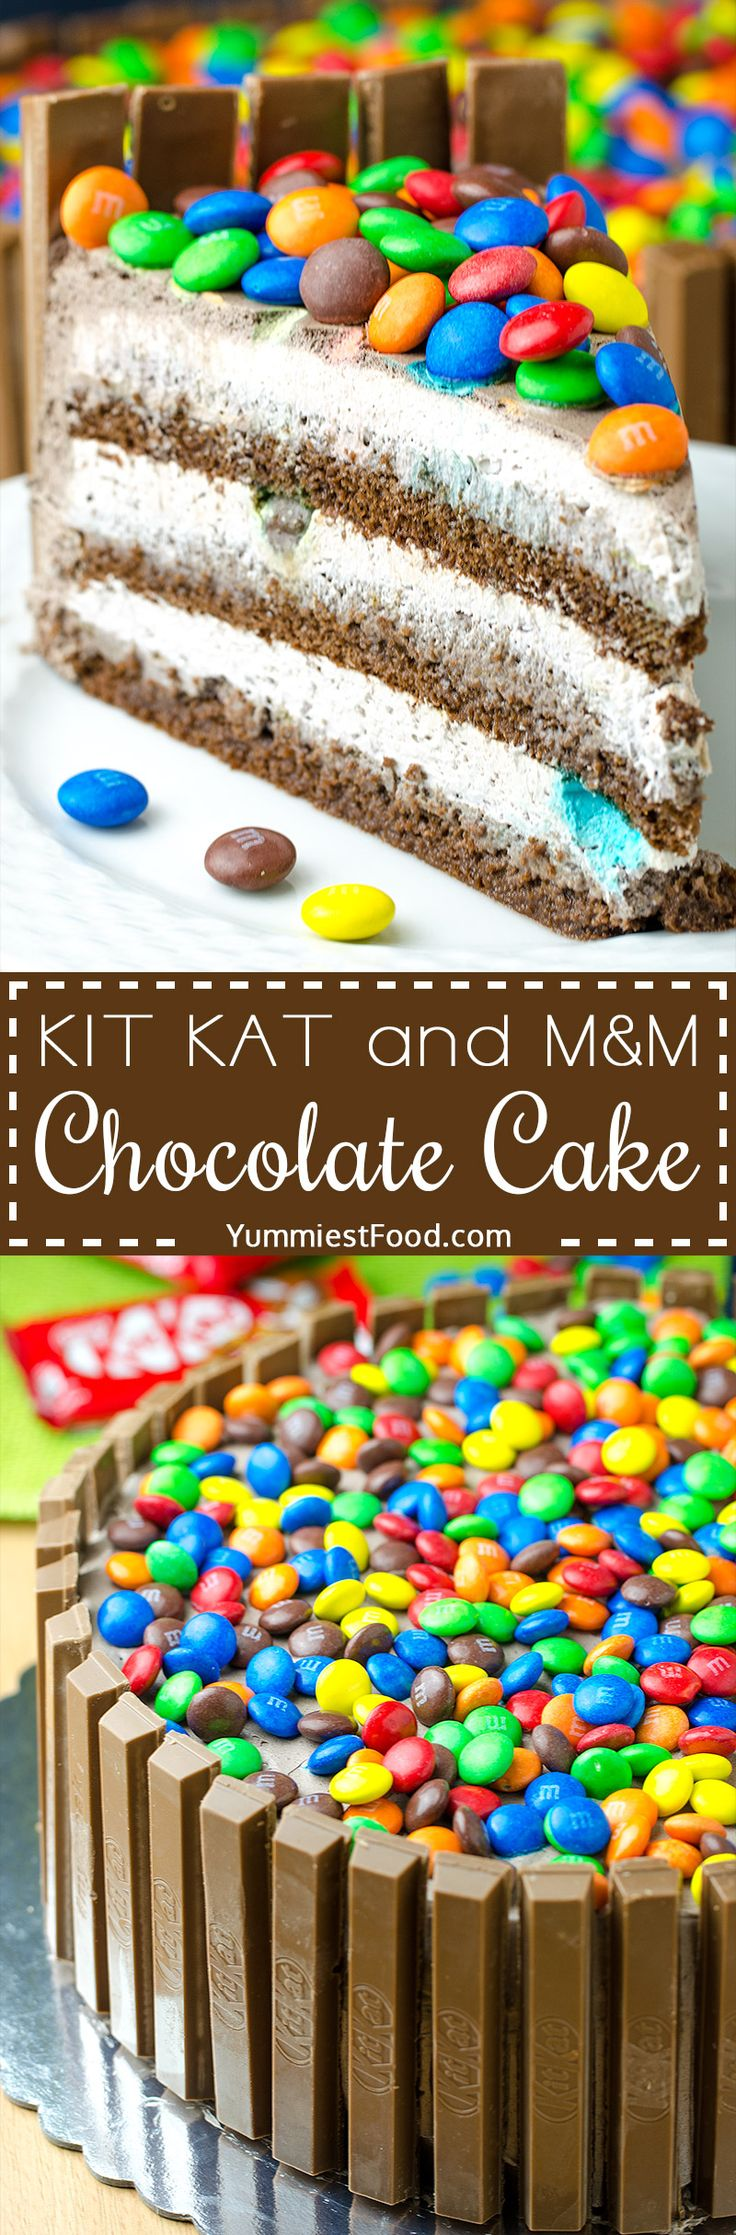 KIT KAT and M&M chocolate cake with peanut butter frosting - Fun to make and party to eat! This cake is so good and easy to make. Perfect for birthdays and other celebrations!